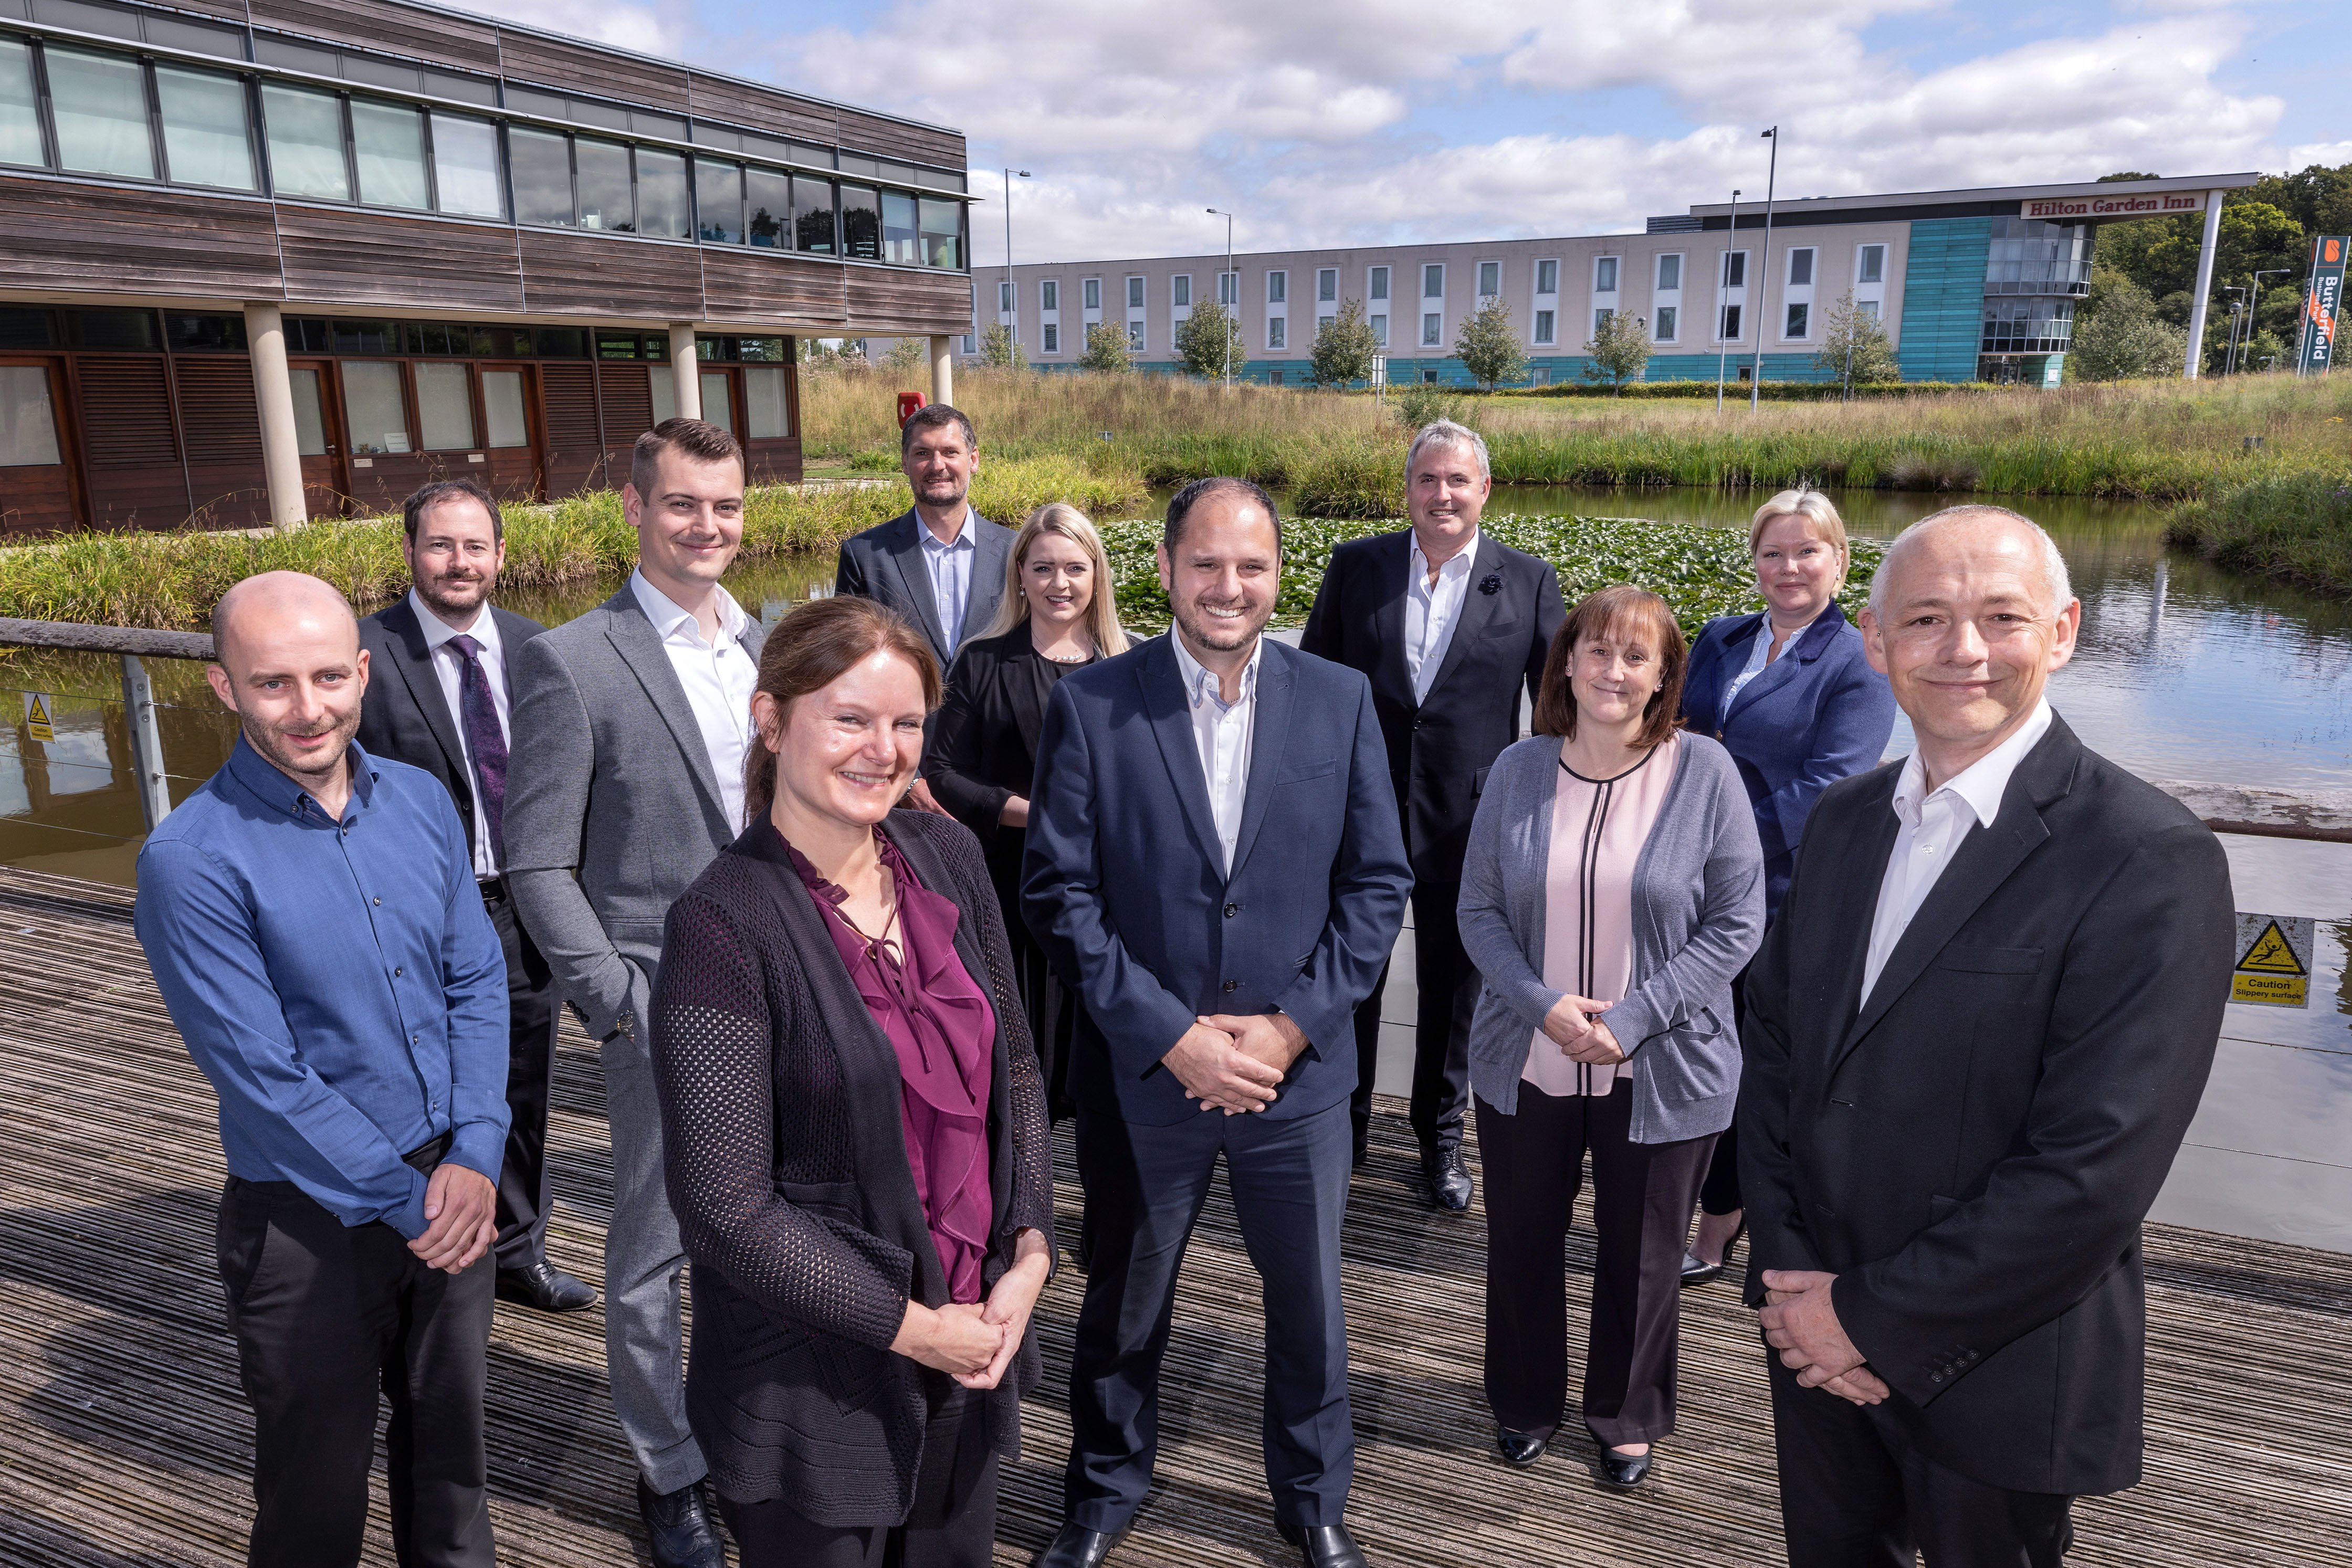 Merger of accountancy practices is a welcome boost to businesses in Luton and the surrounding area